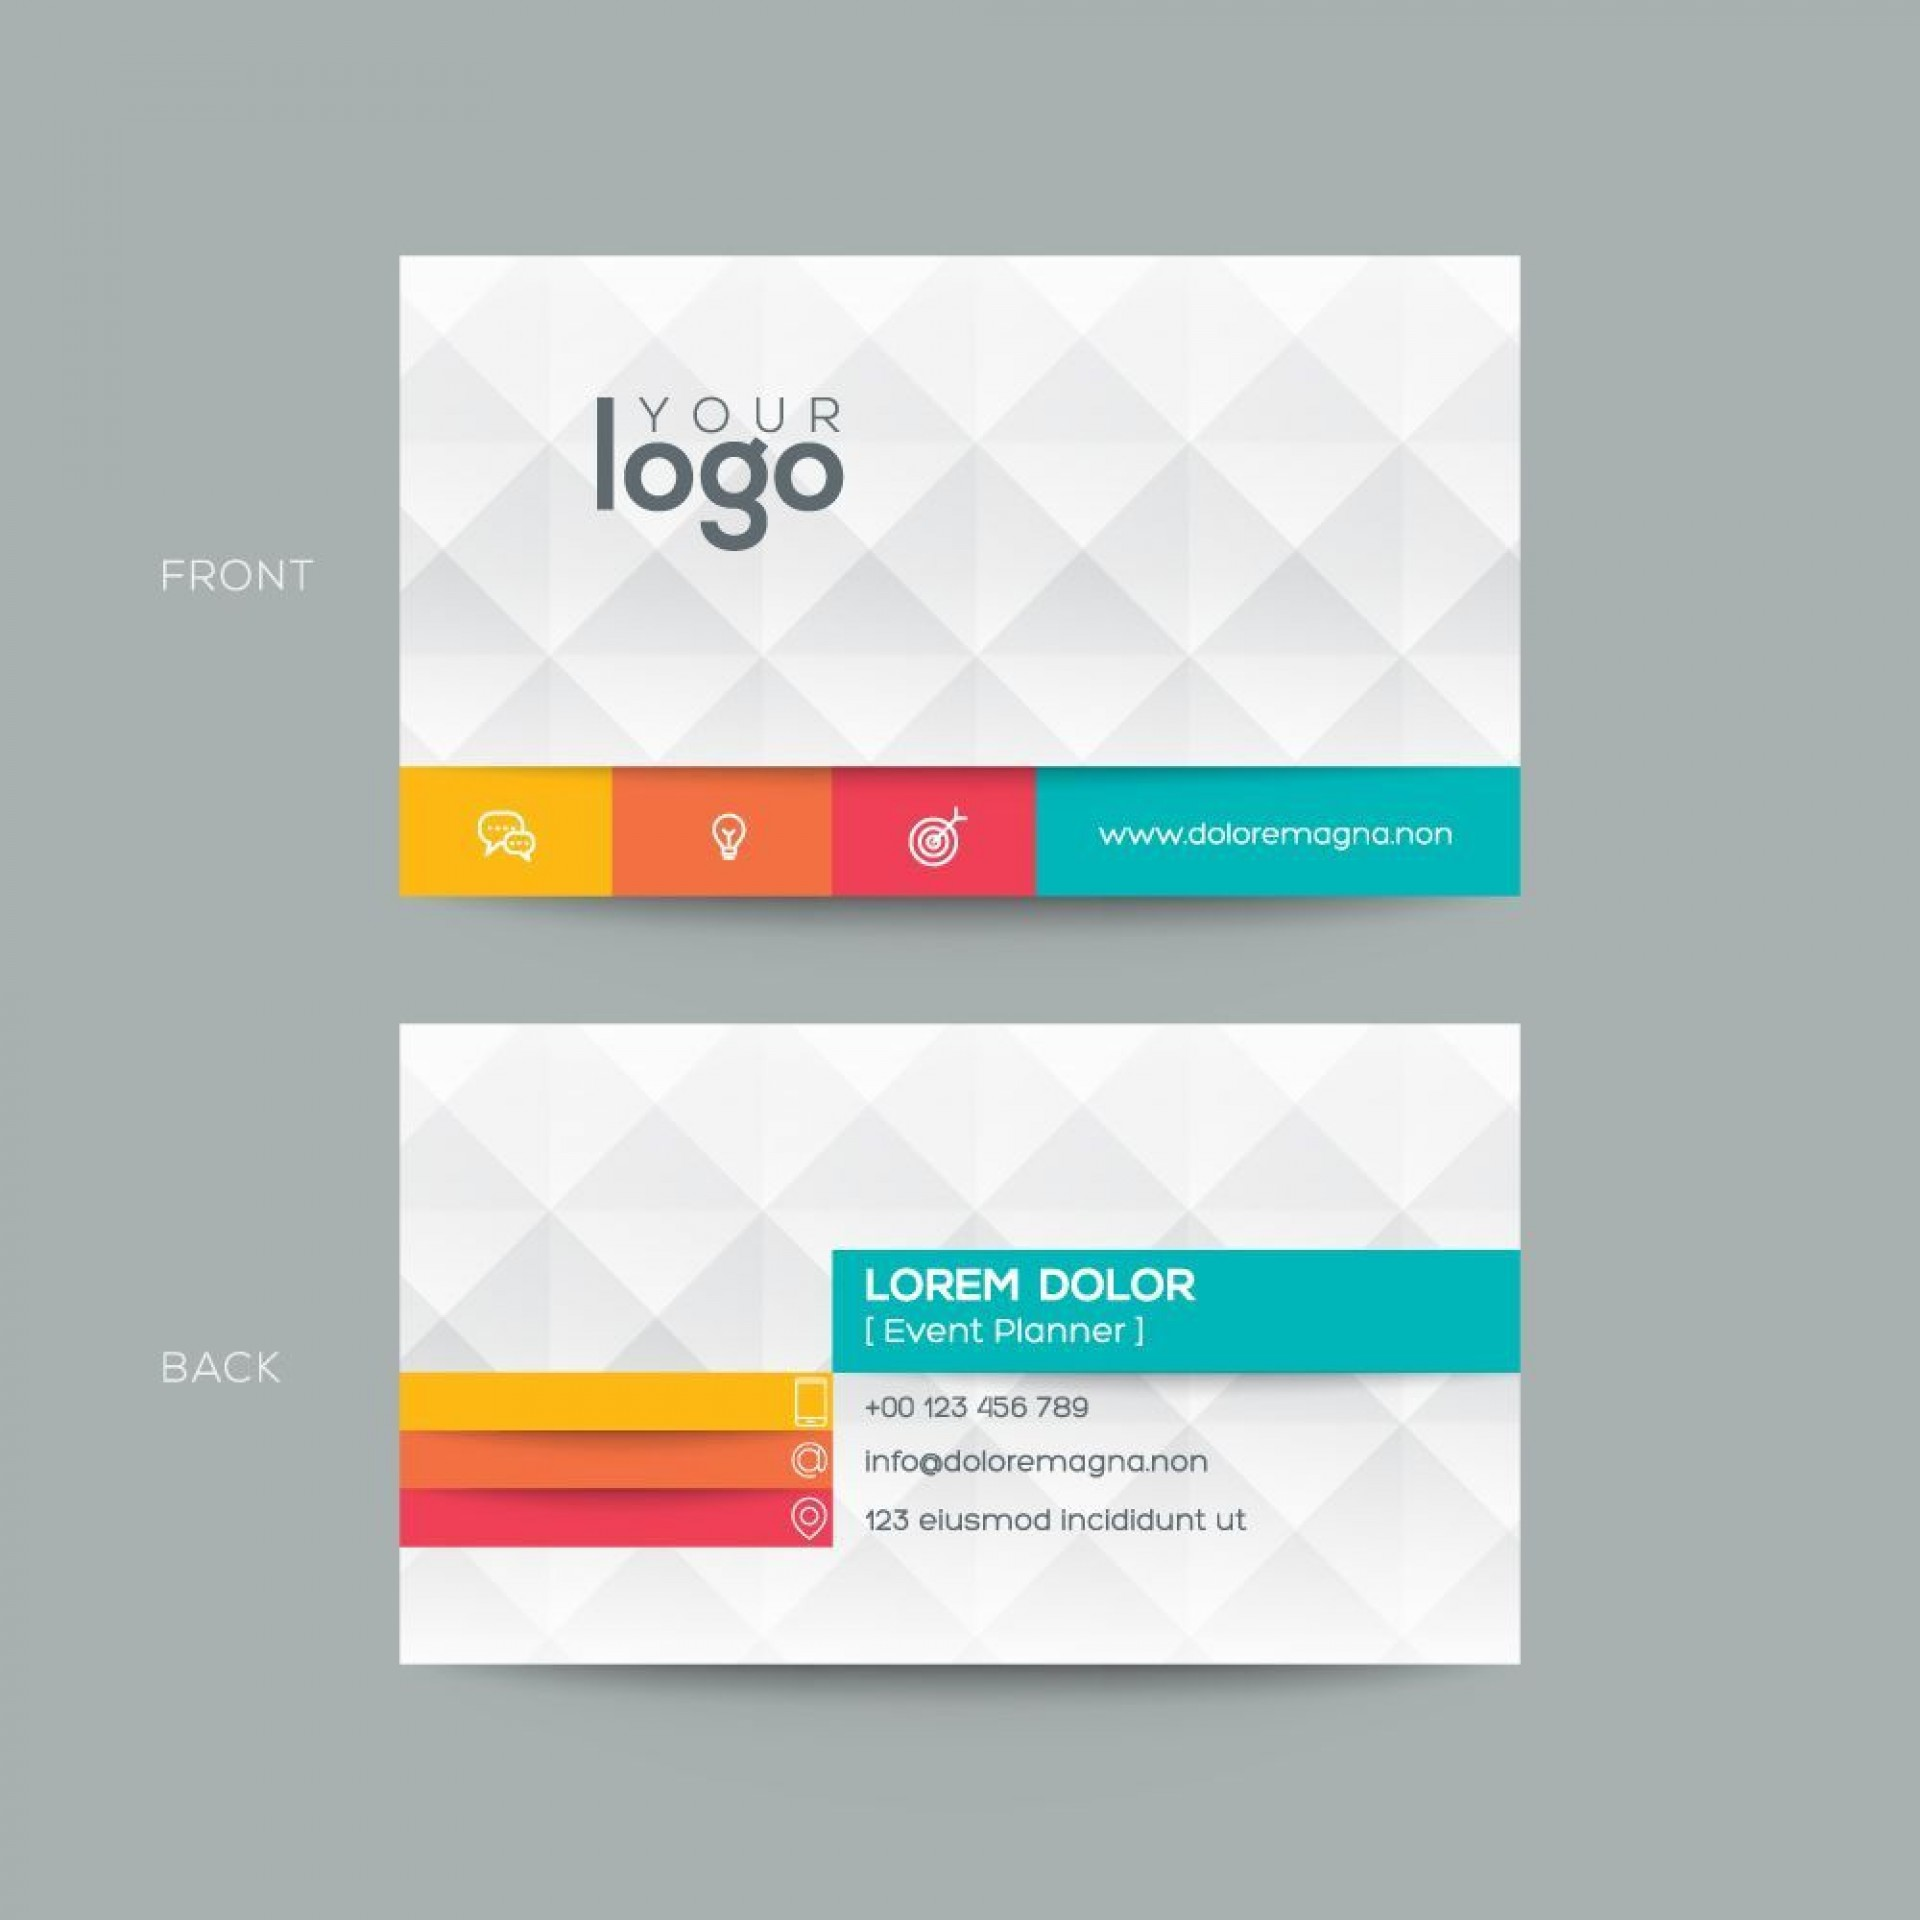 007 Excellent Simple Visiting Card Template Image  Templates Busines Psd Design File Free Download1920